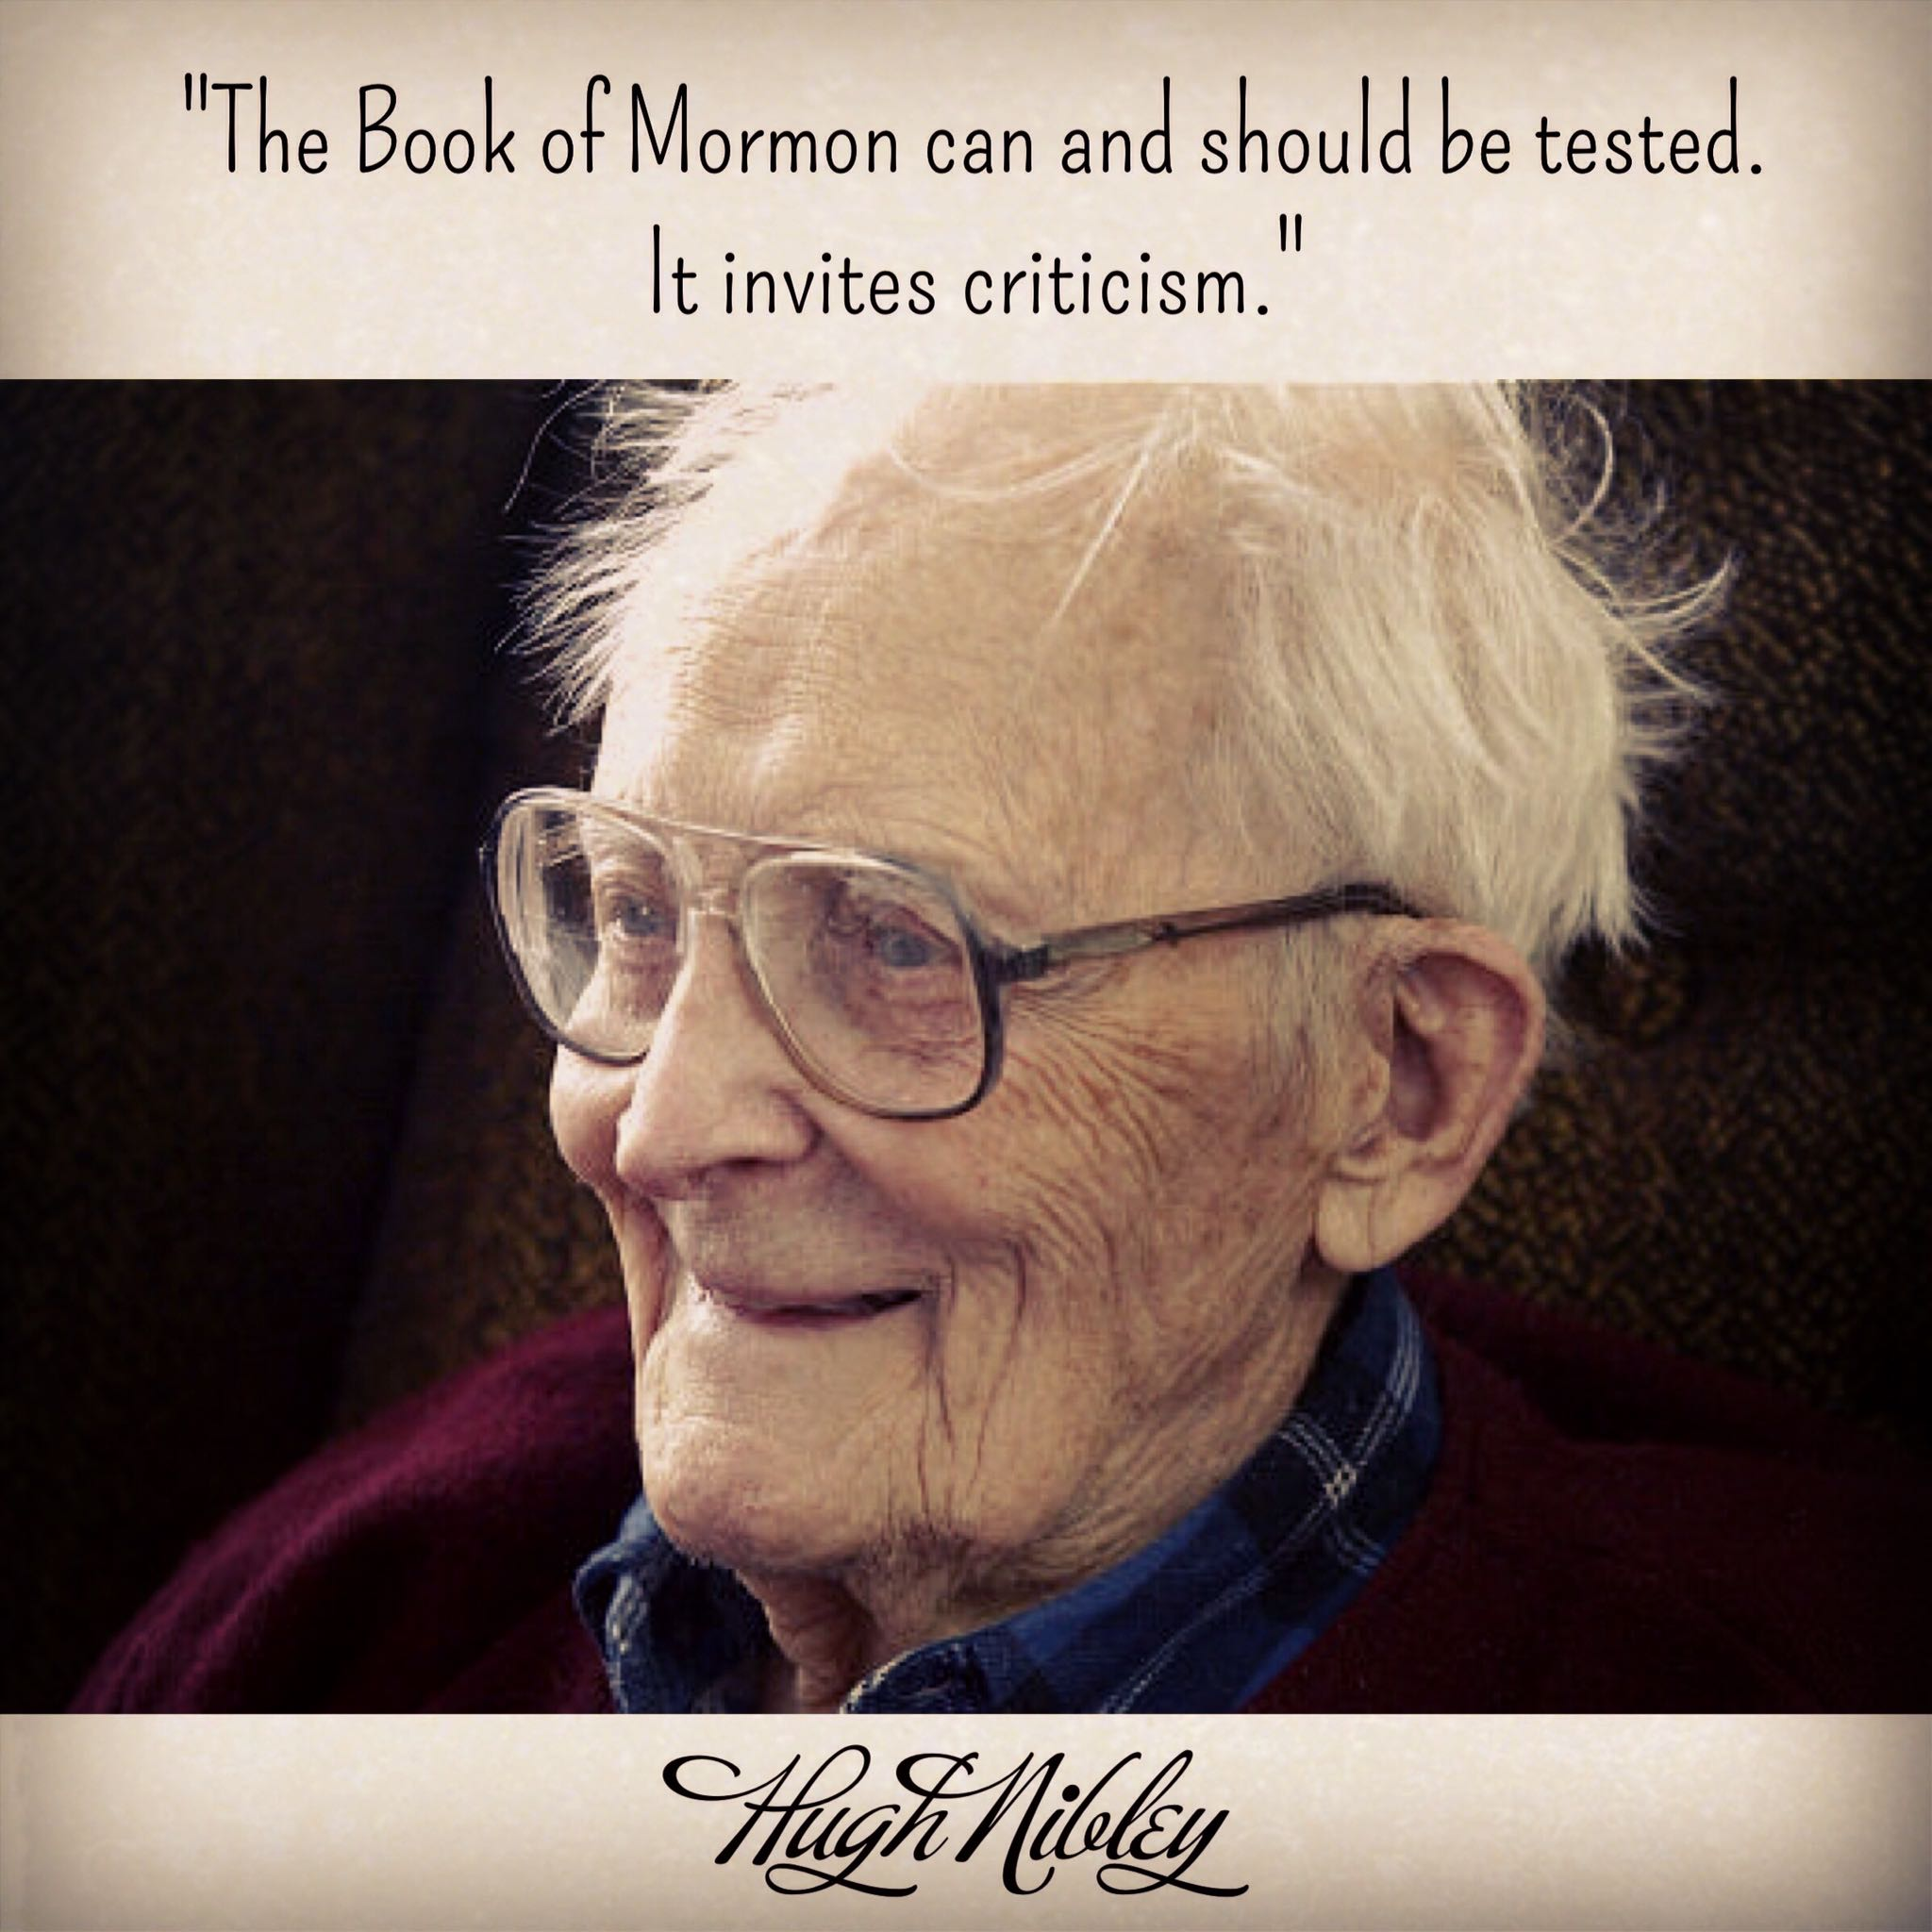 Test the Book of Mormon